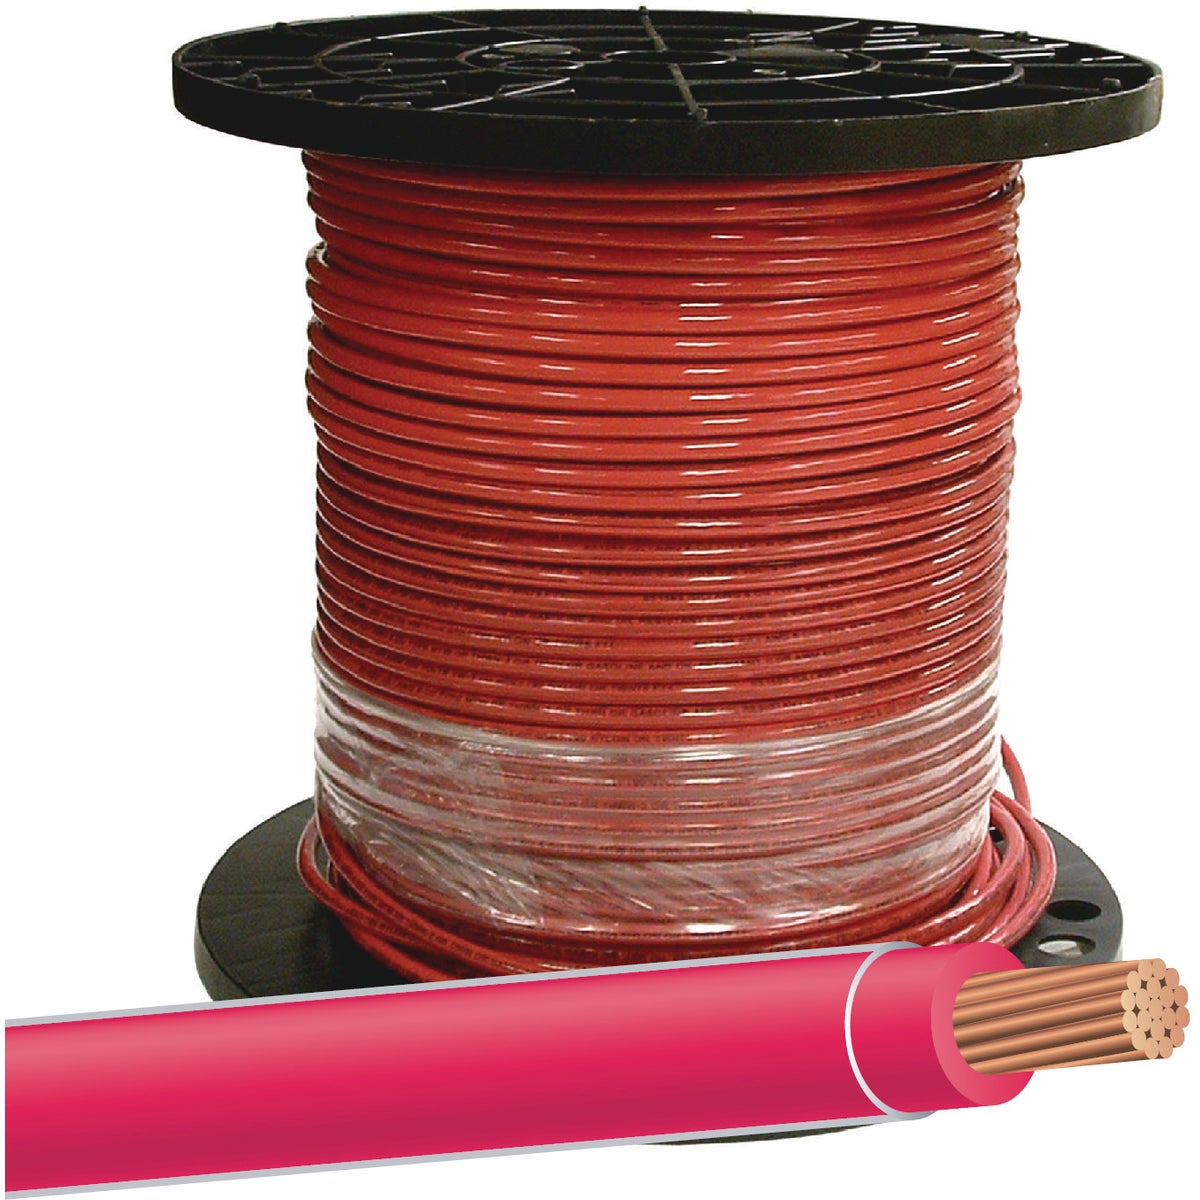 500' 8STR RED THHN WIRE - 20490912 by Southwire Company